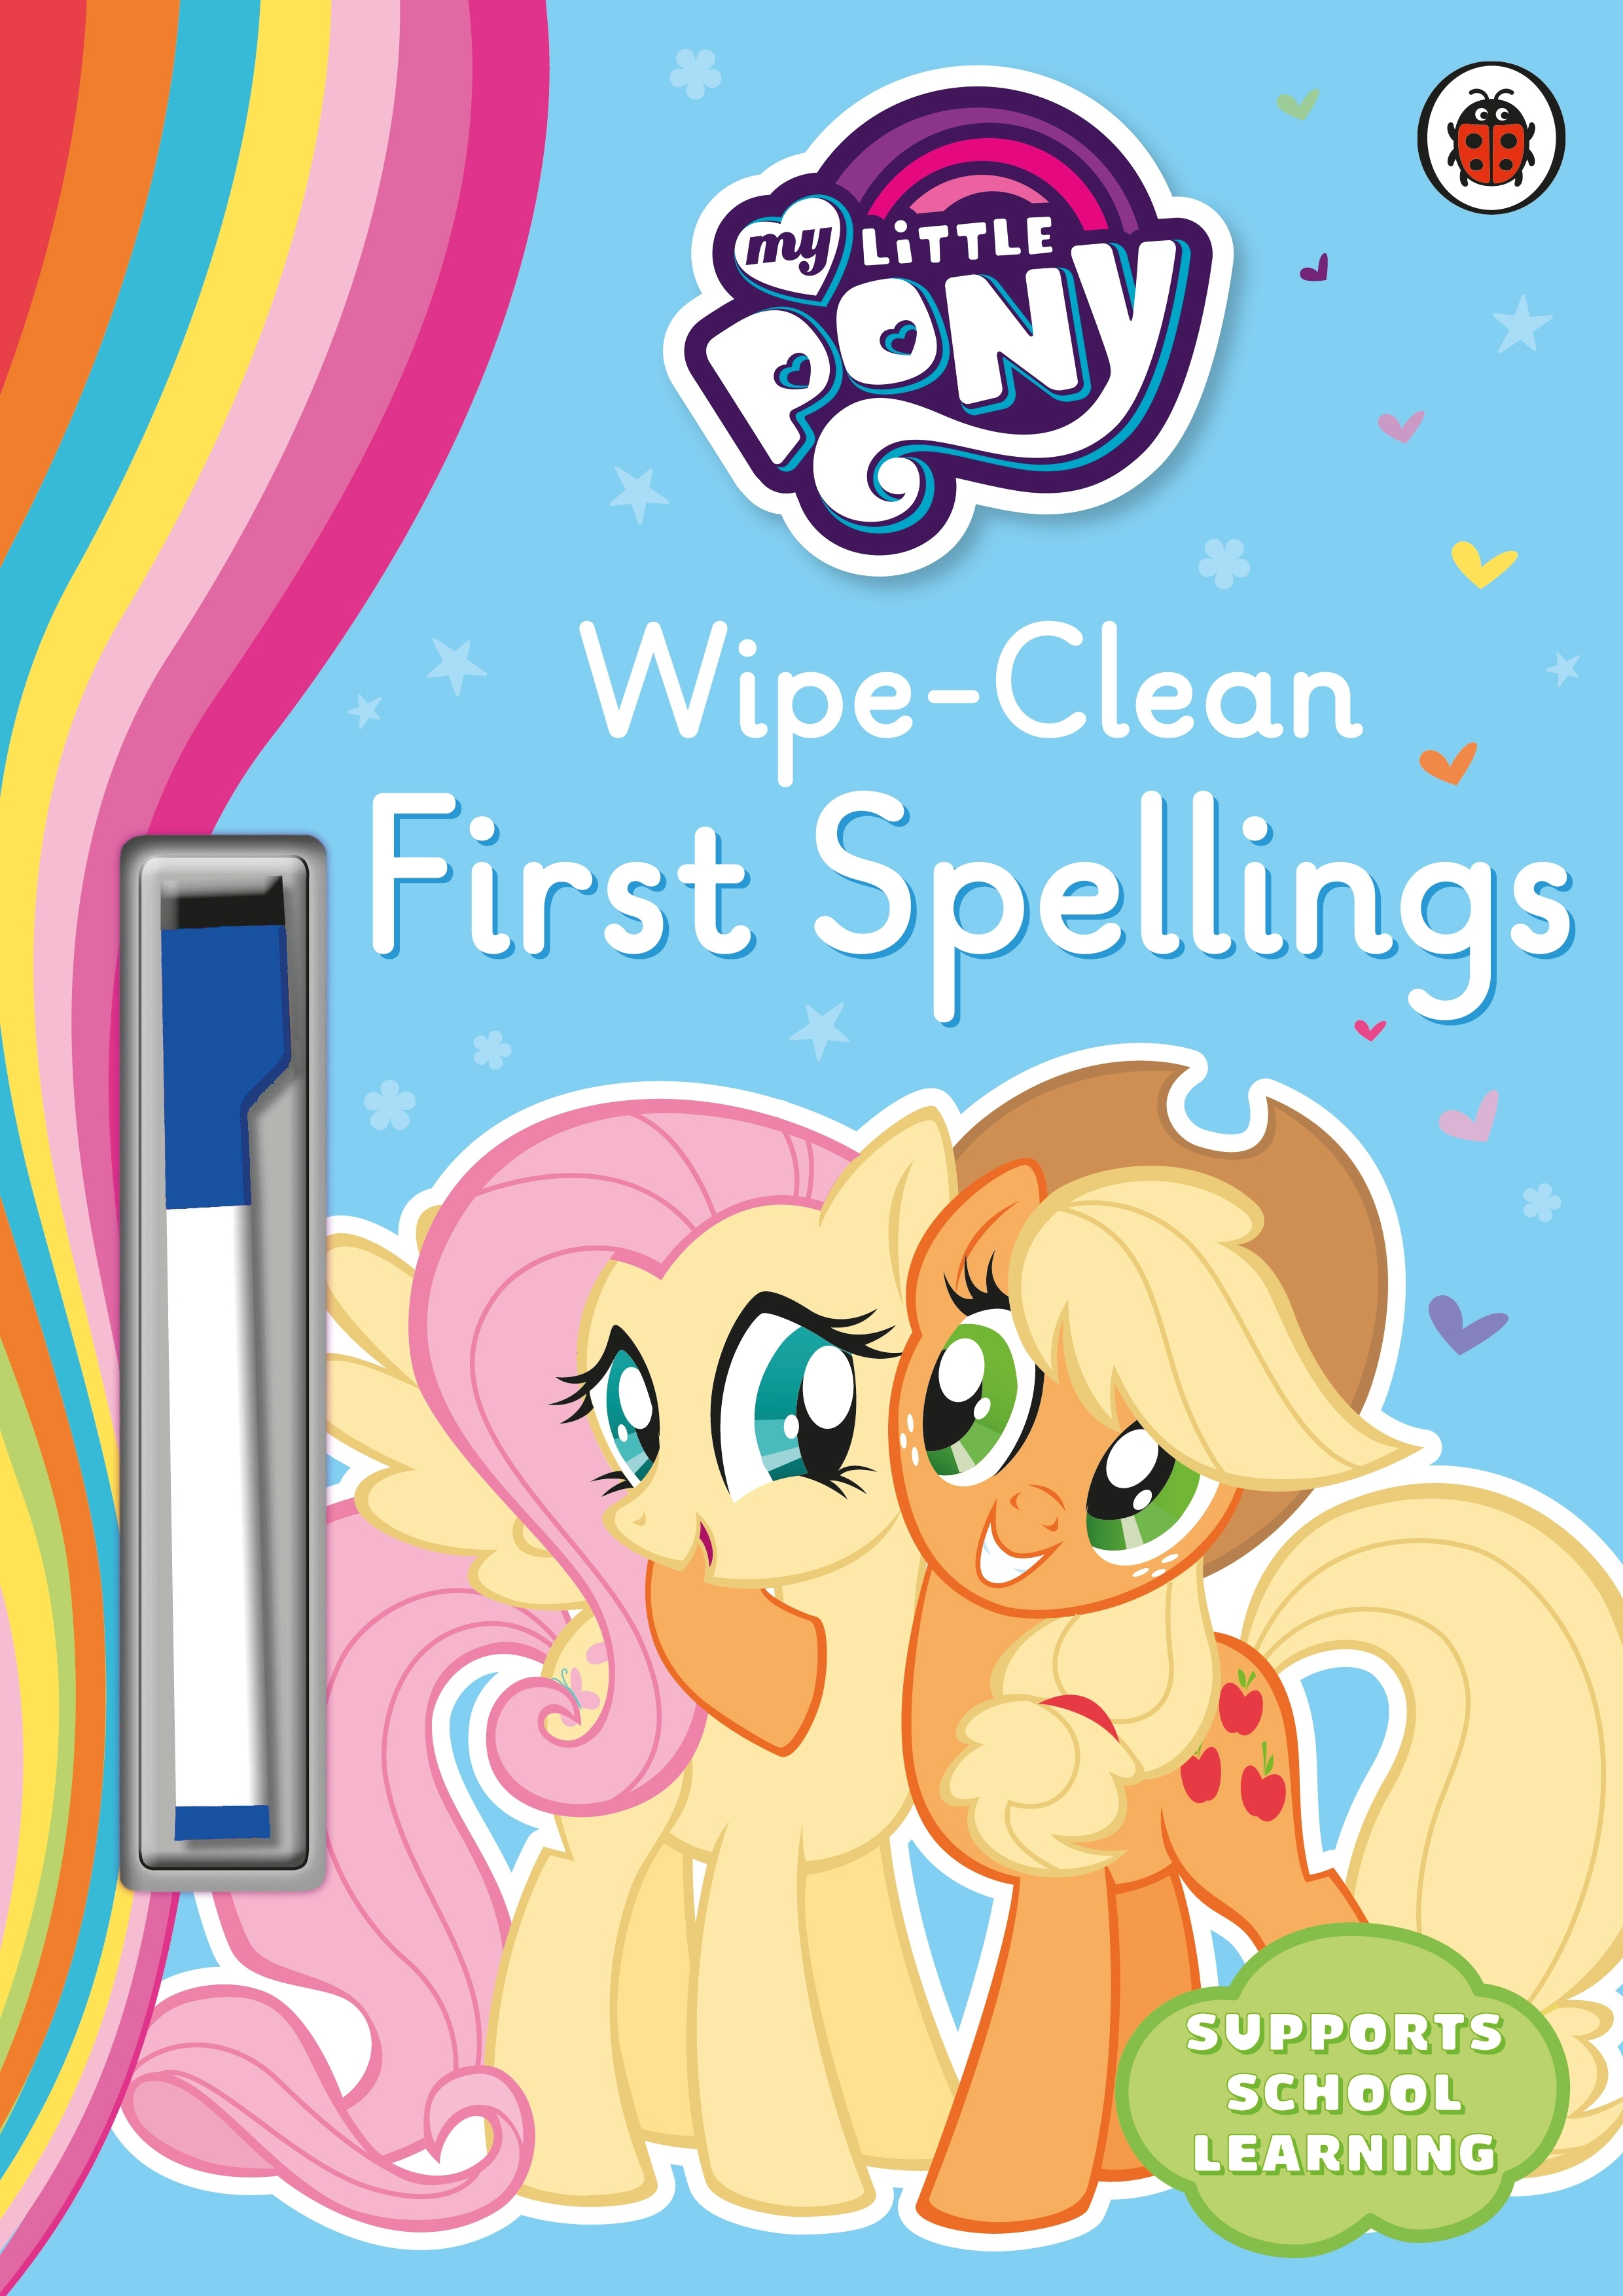 My little pony colouring book australia - My Little Pony Wipe Clean First Spellings